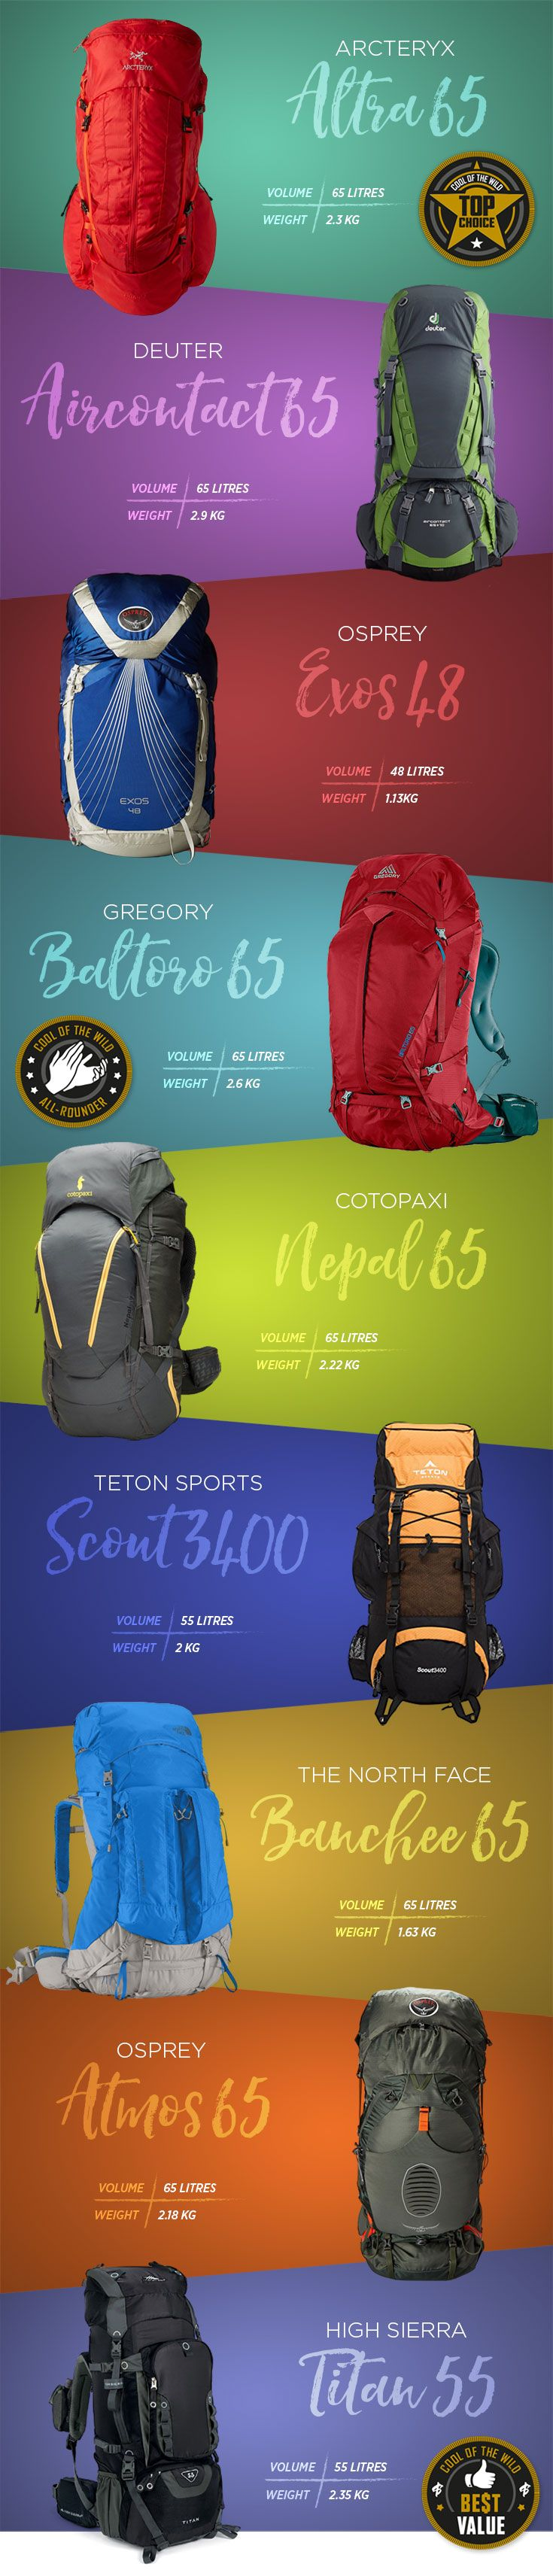 Best 25 Trekking gear ideas on Pinterest